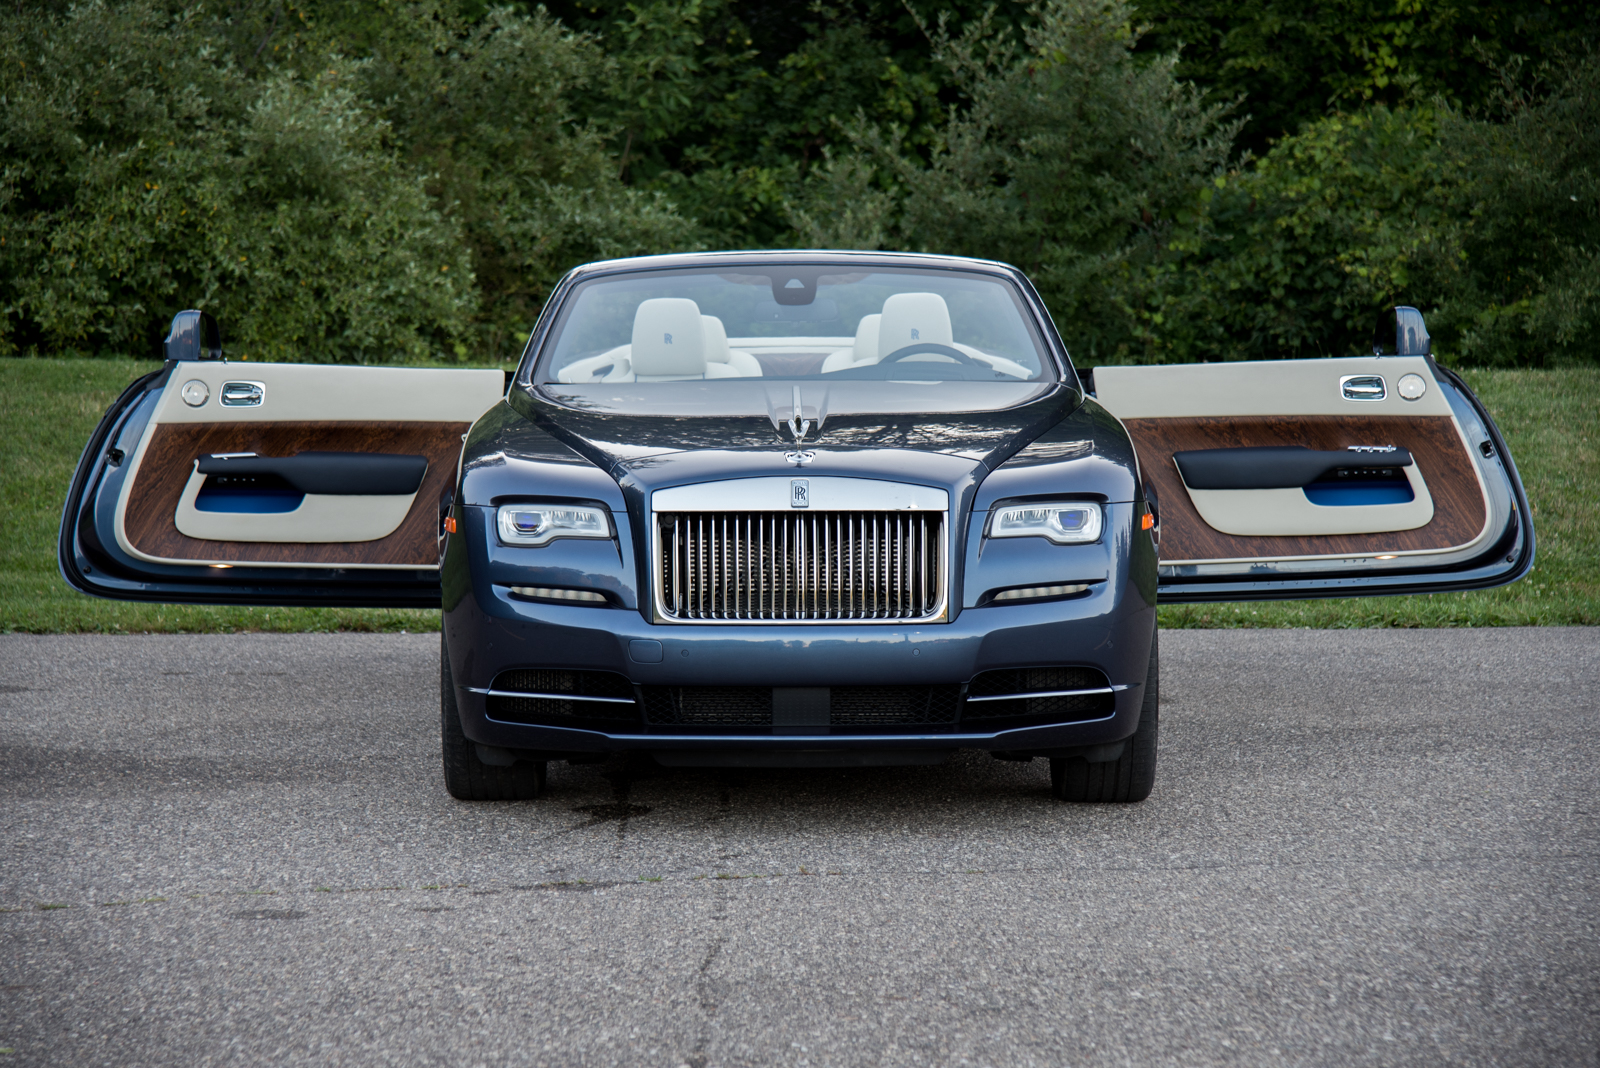 Used Car Loan >> 2017 Rolls-Royce Dawn Review - AutoGuide.com